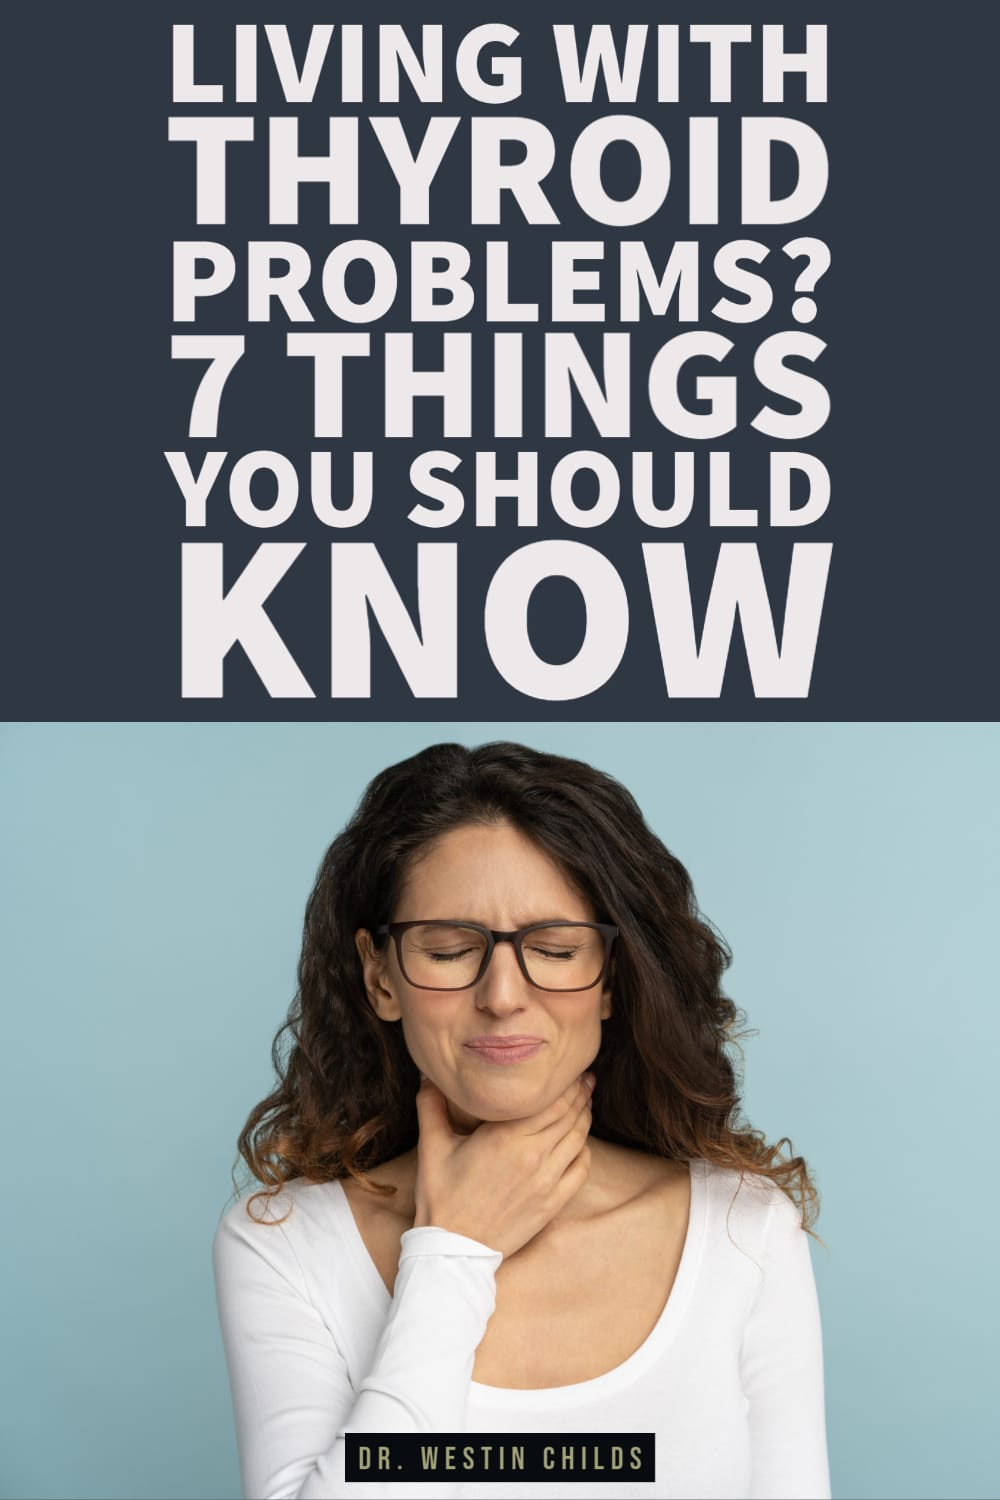 What You Should Expect Living with Thyroid Problems